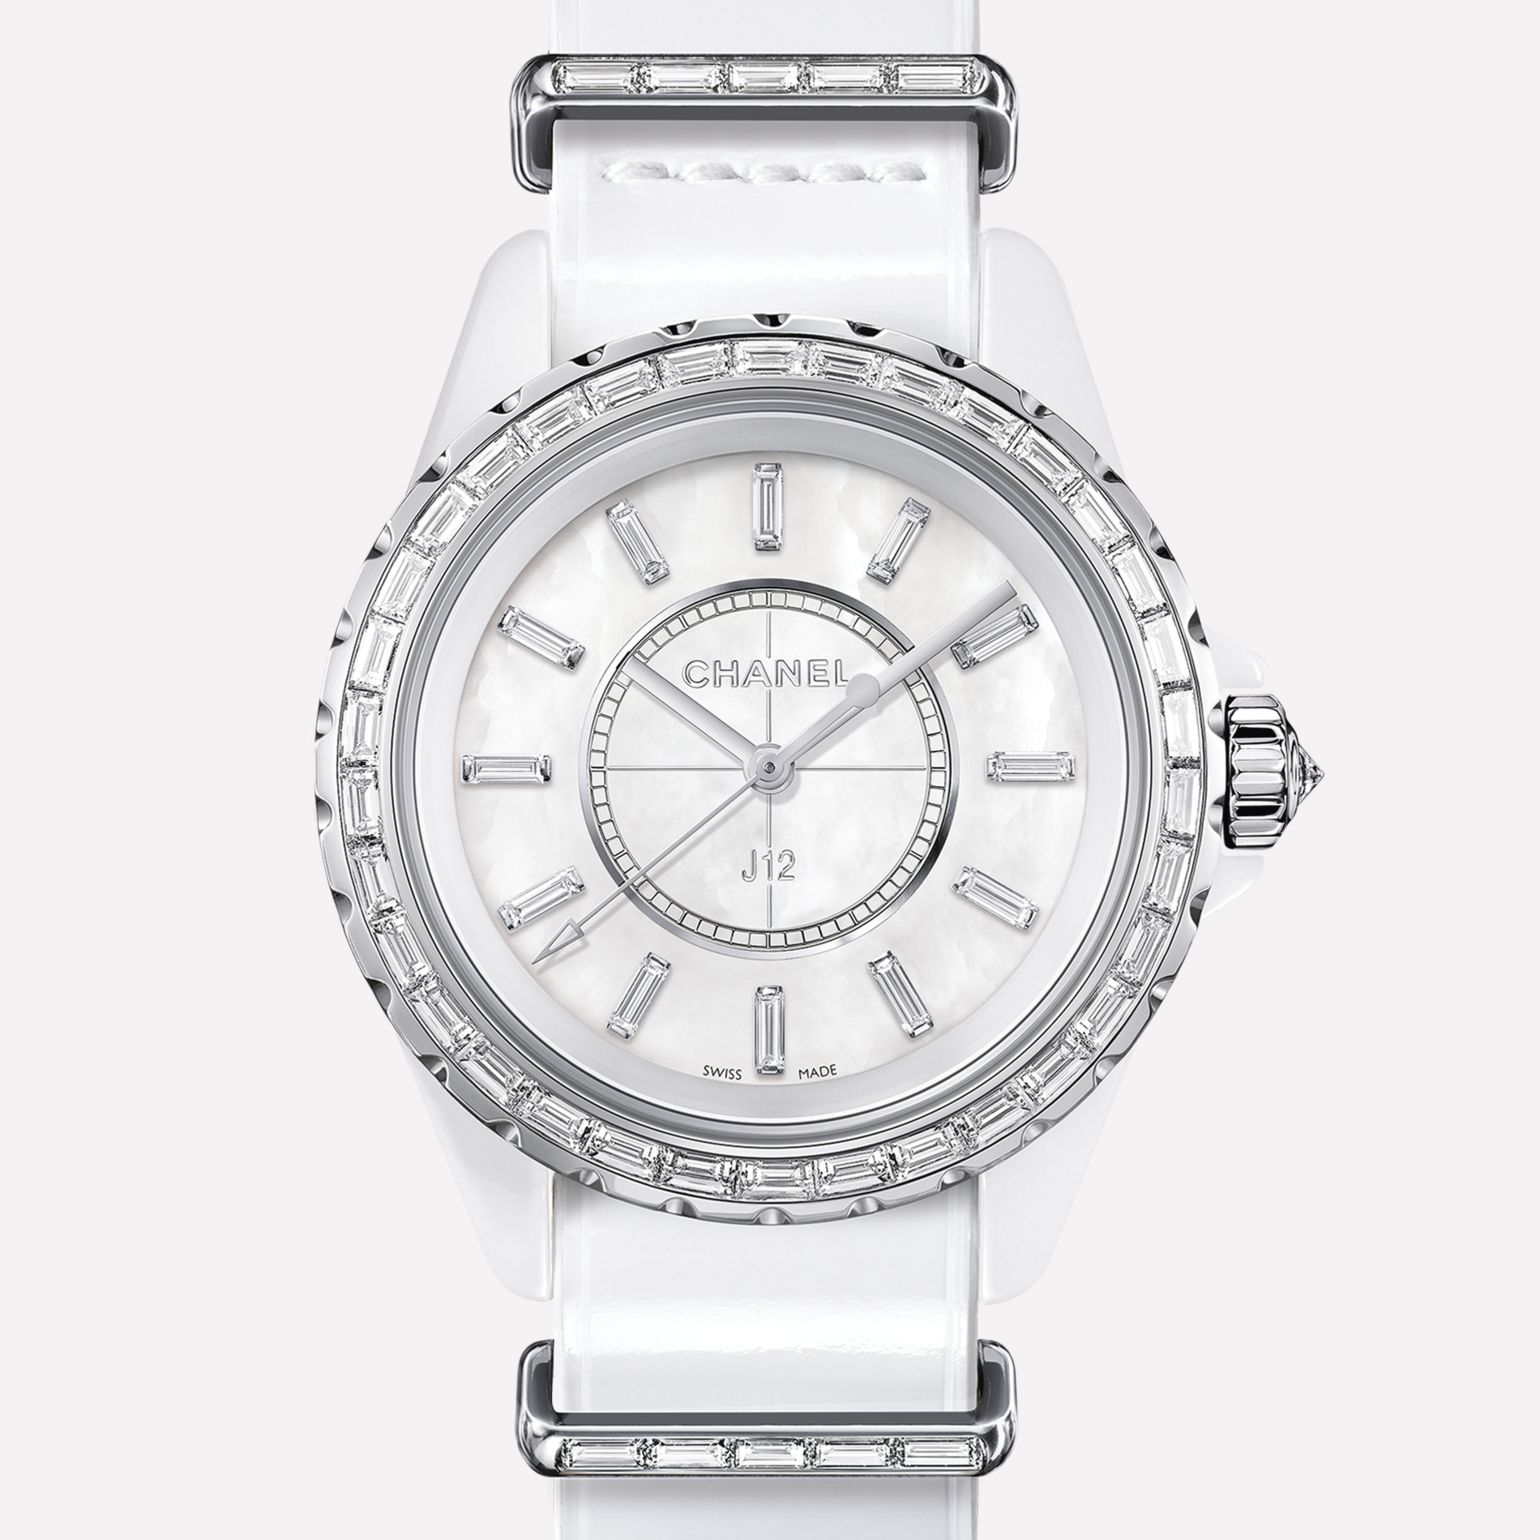 J12-G10 Jewellery Watch White ceramic and white gold, bezel and indicators with baguette cut diamonds